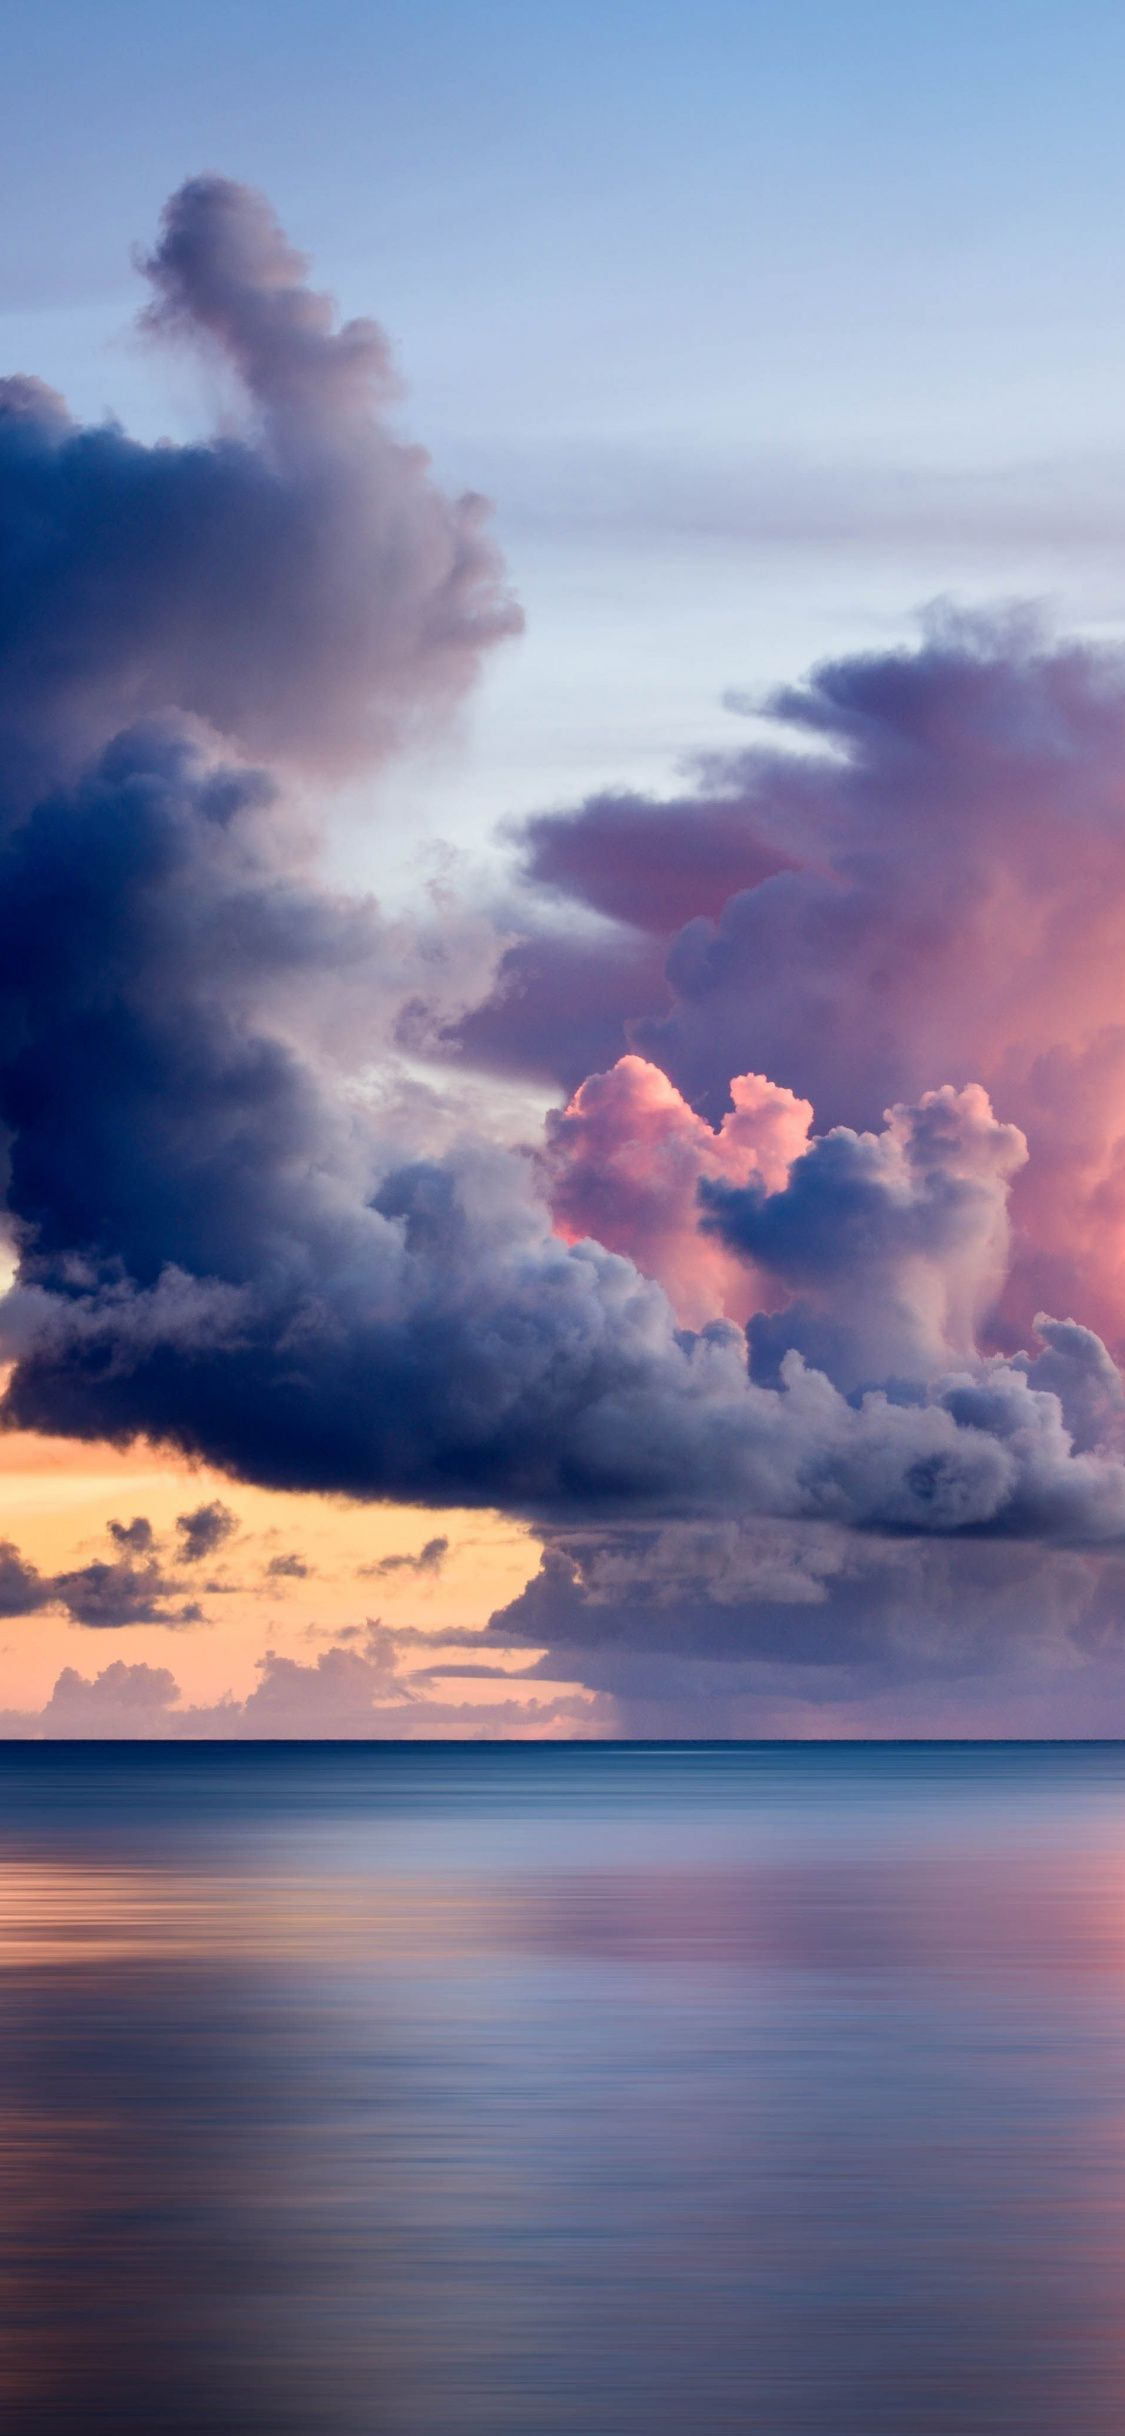 Nature, clouds over the sea, body of water, calm, sky